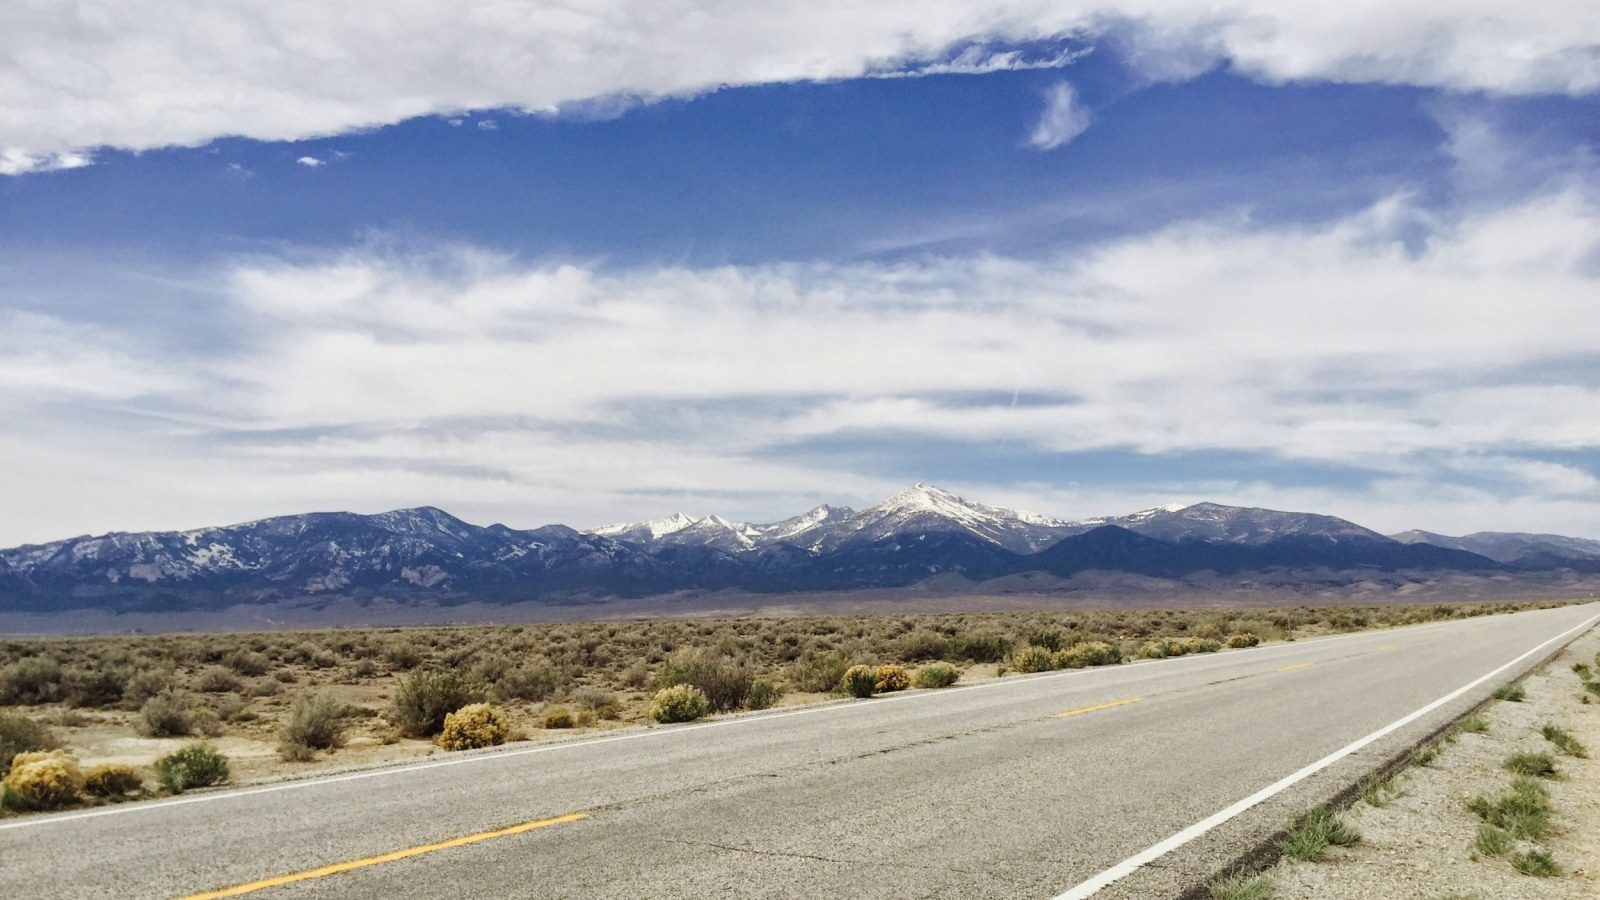 Route 50: Driving America's 'Loneliest Road'